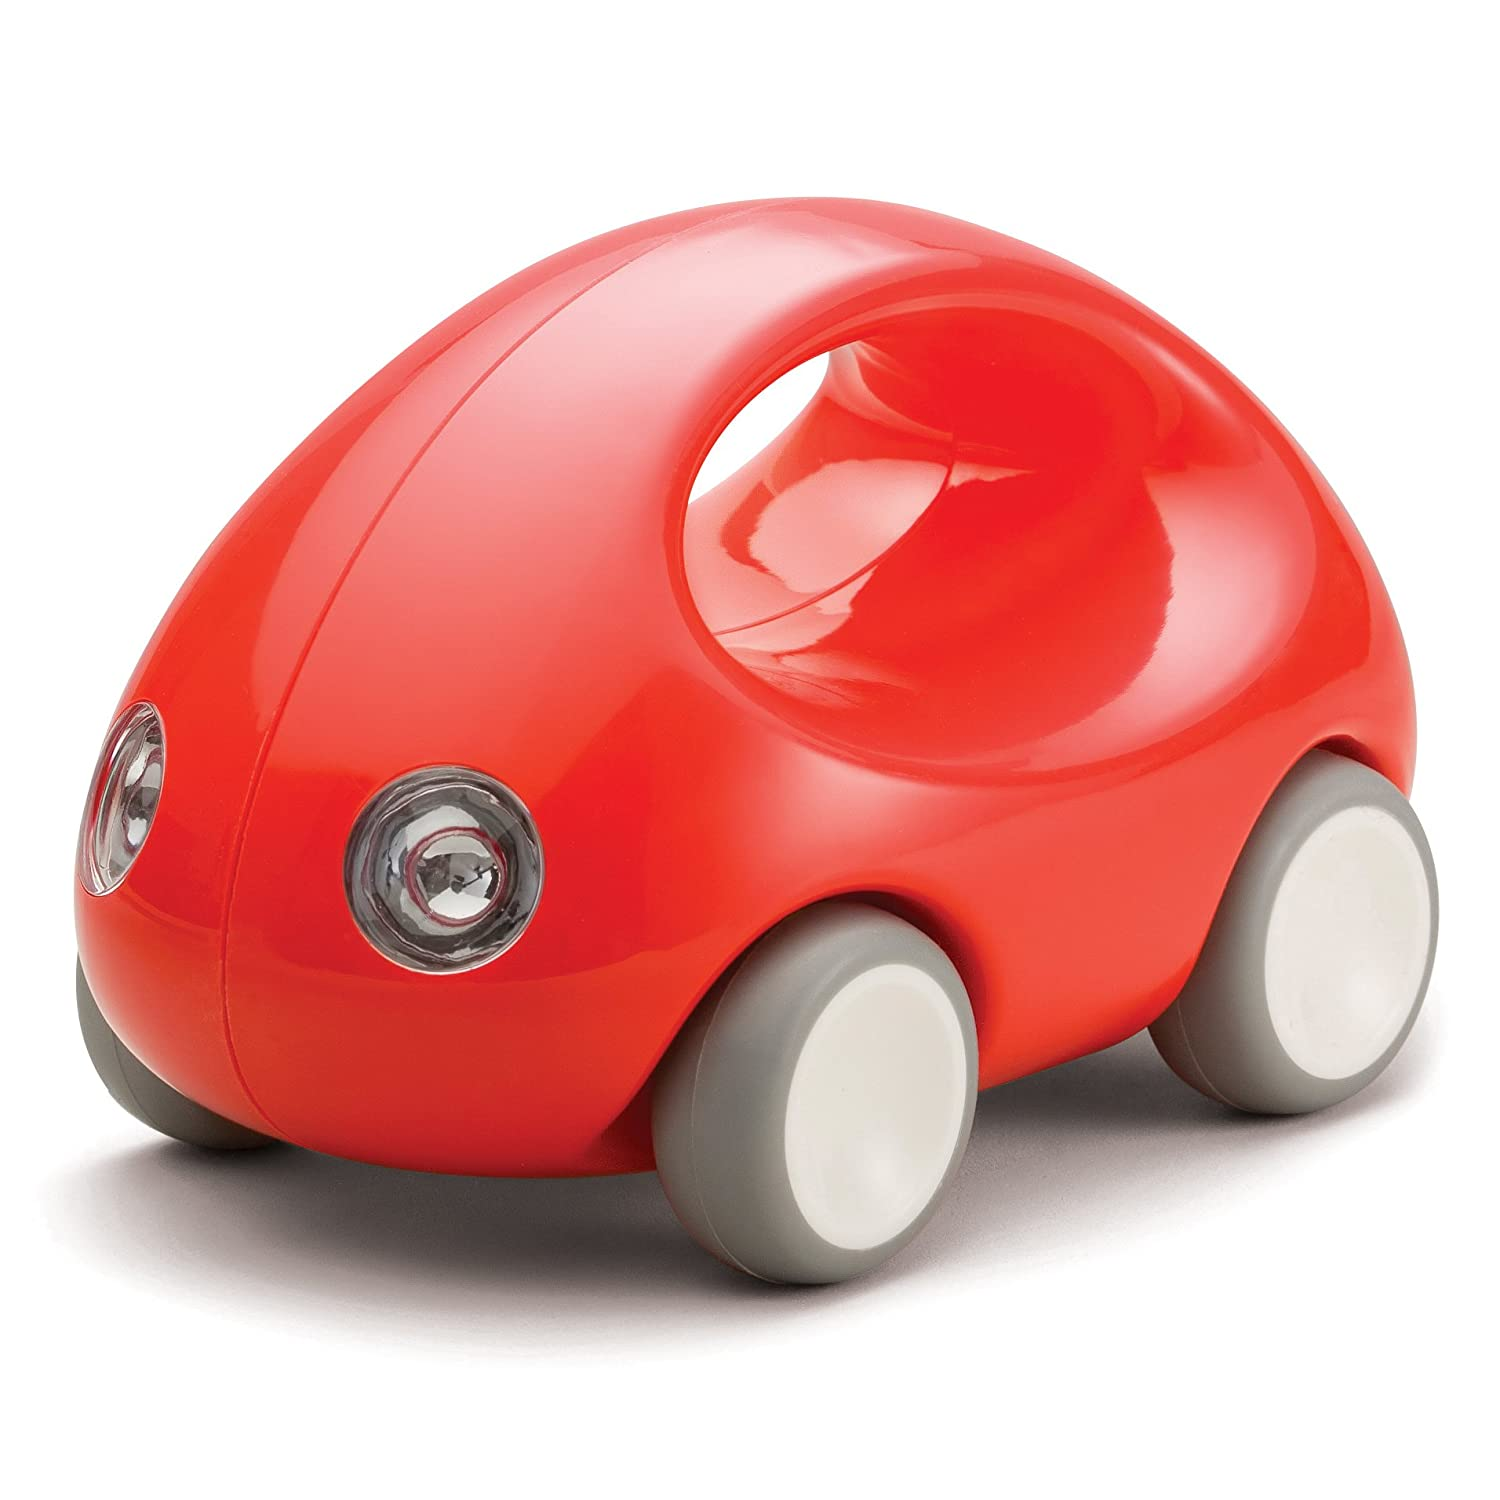 buy kid o go car red online at low prices in india amazonin